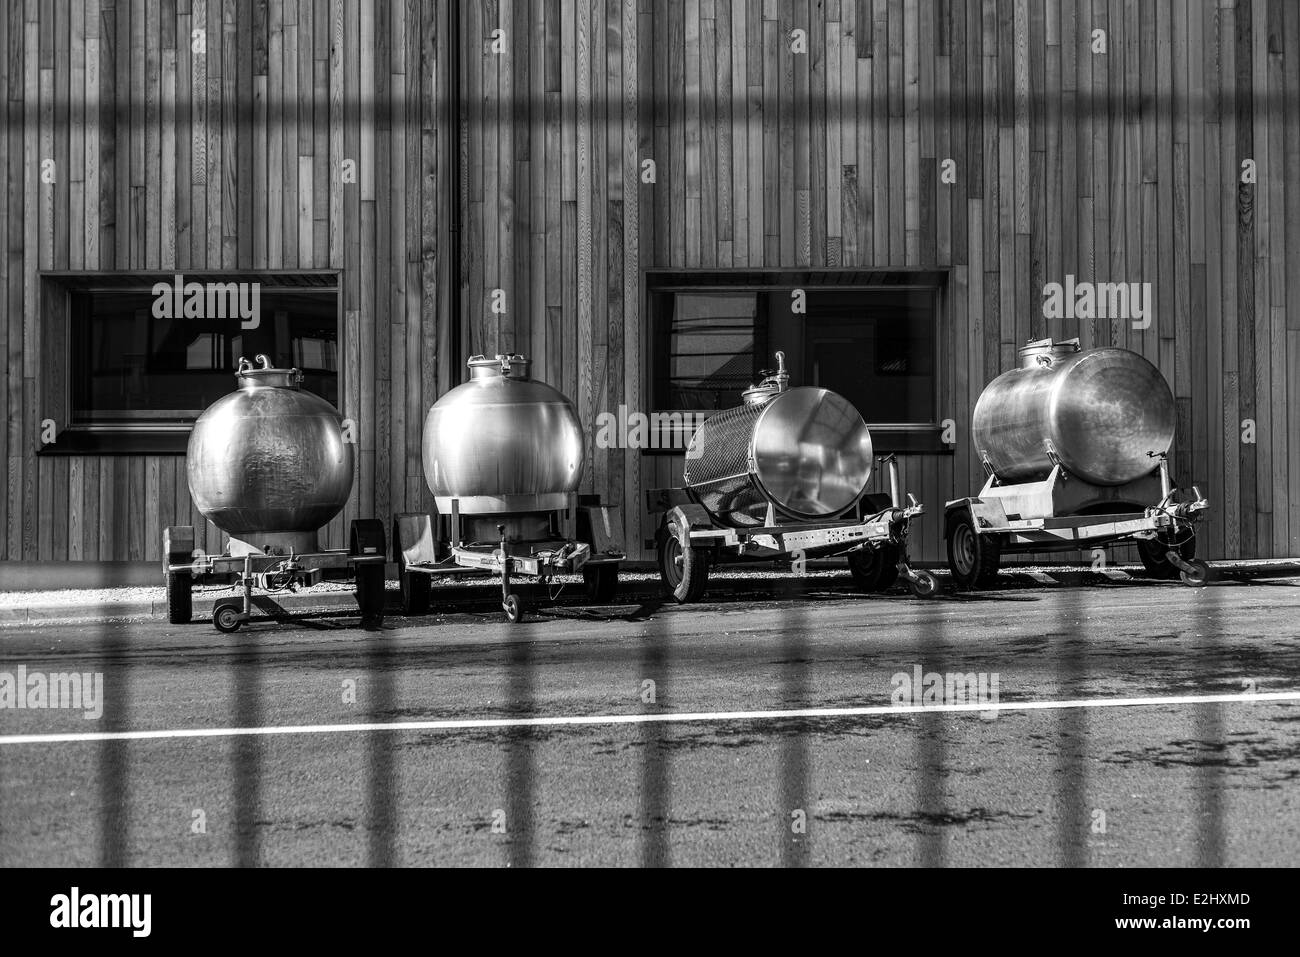 Propane tanks lined up on vehicle trailers, lPornic, Loire-Atlantique, France - Stock Image